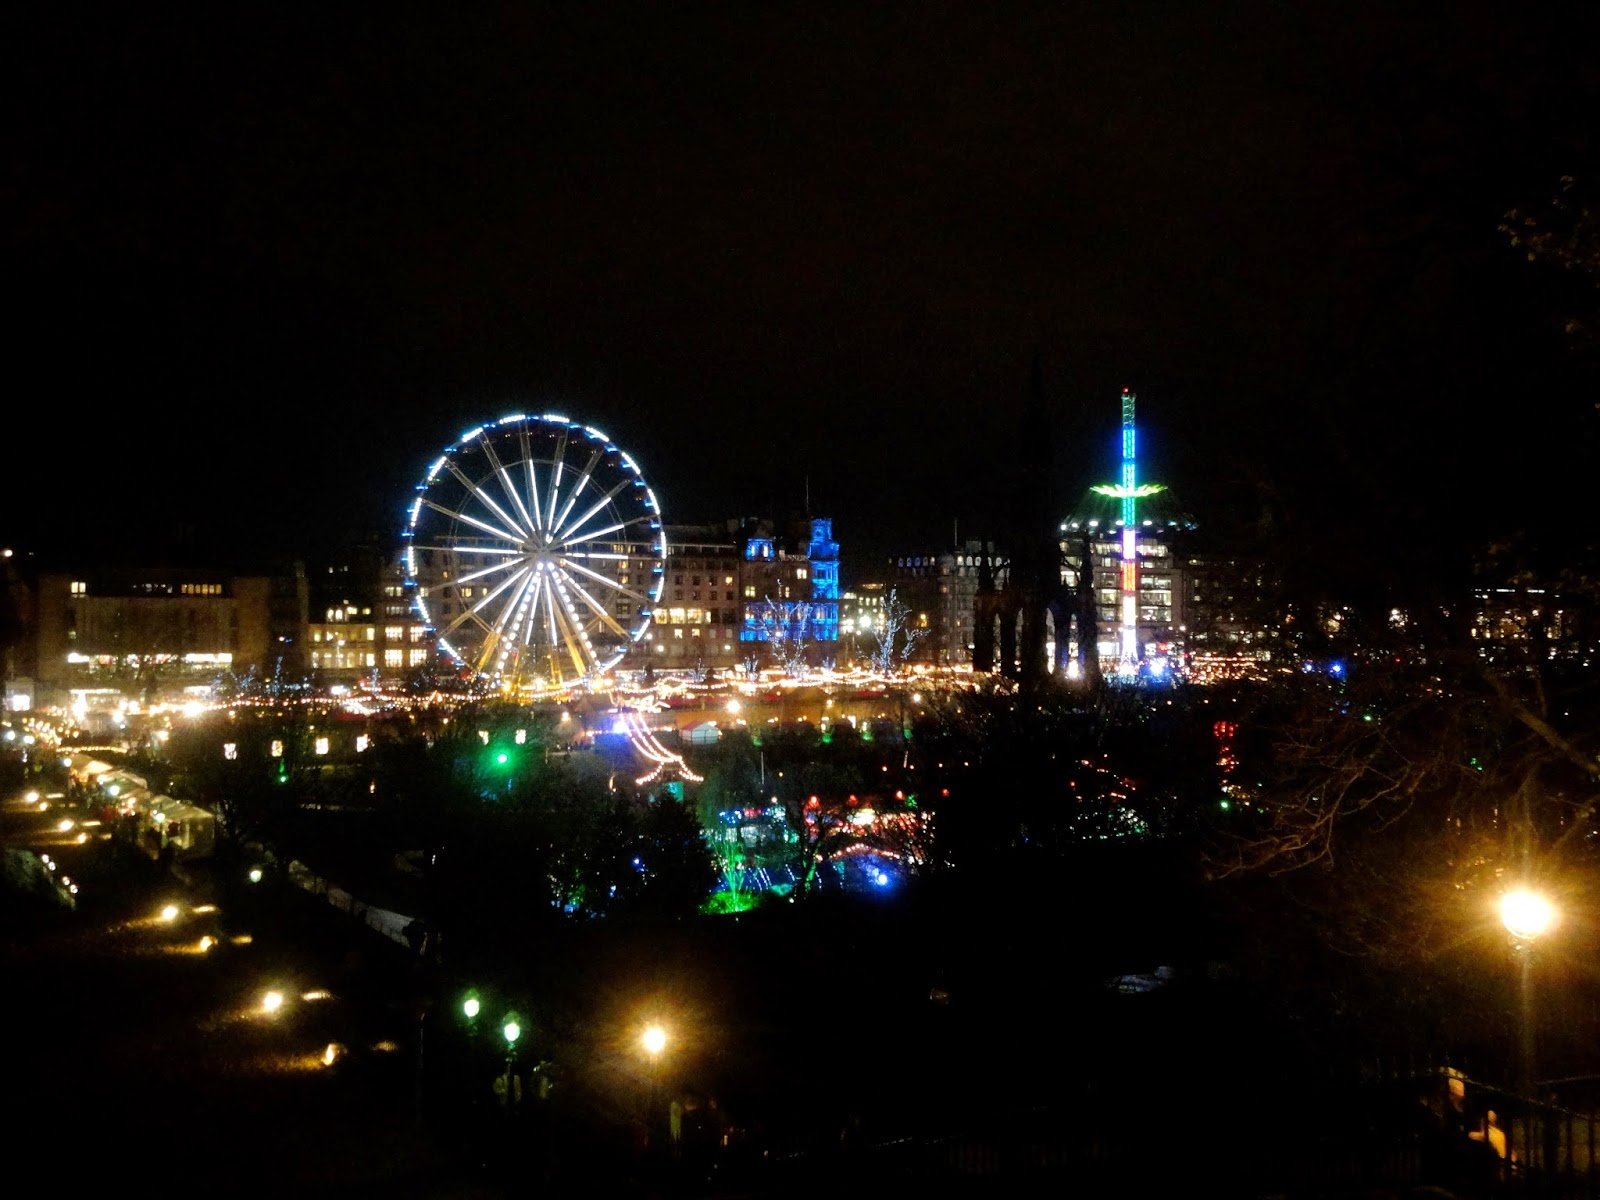 Edinburgh Winter Wonderland at Christmas in Princes Street Gardens